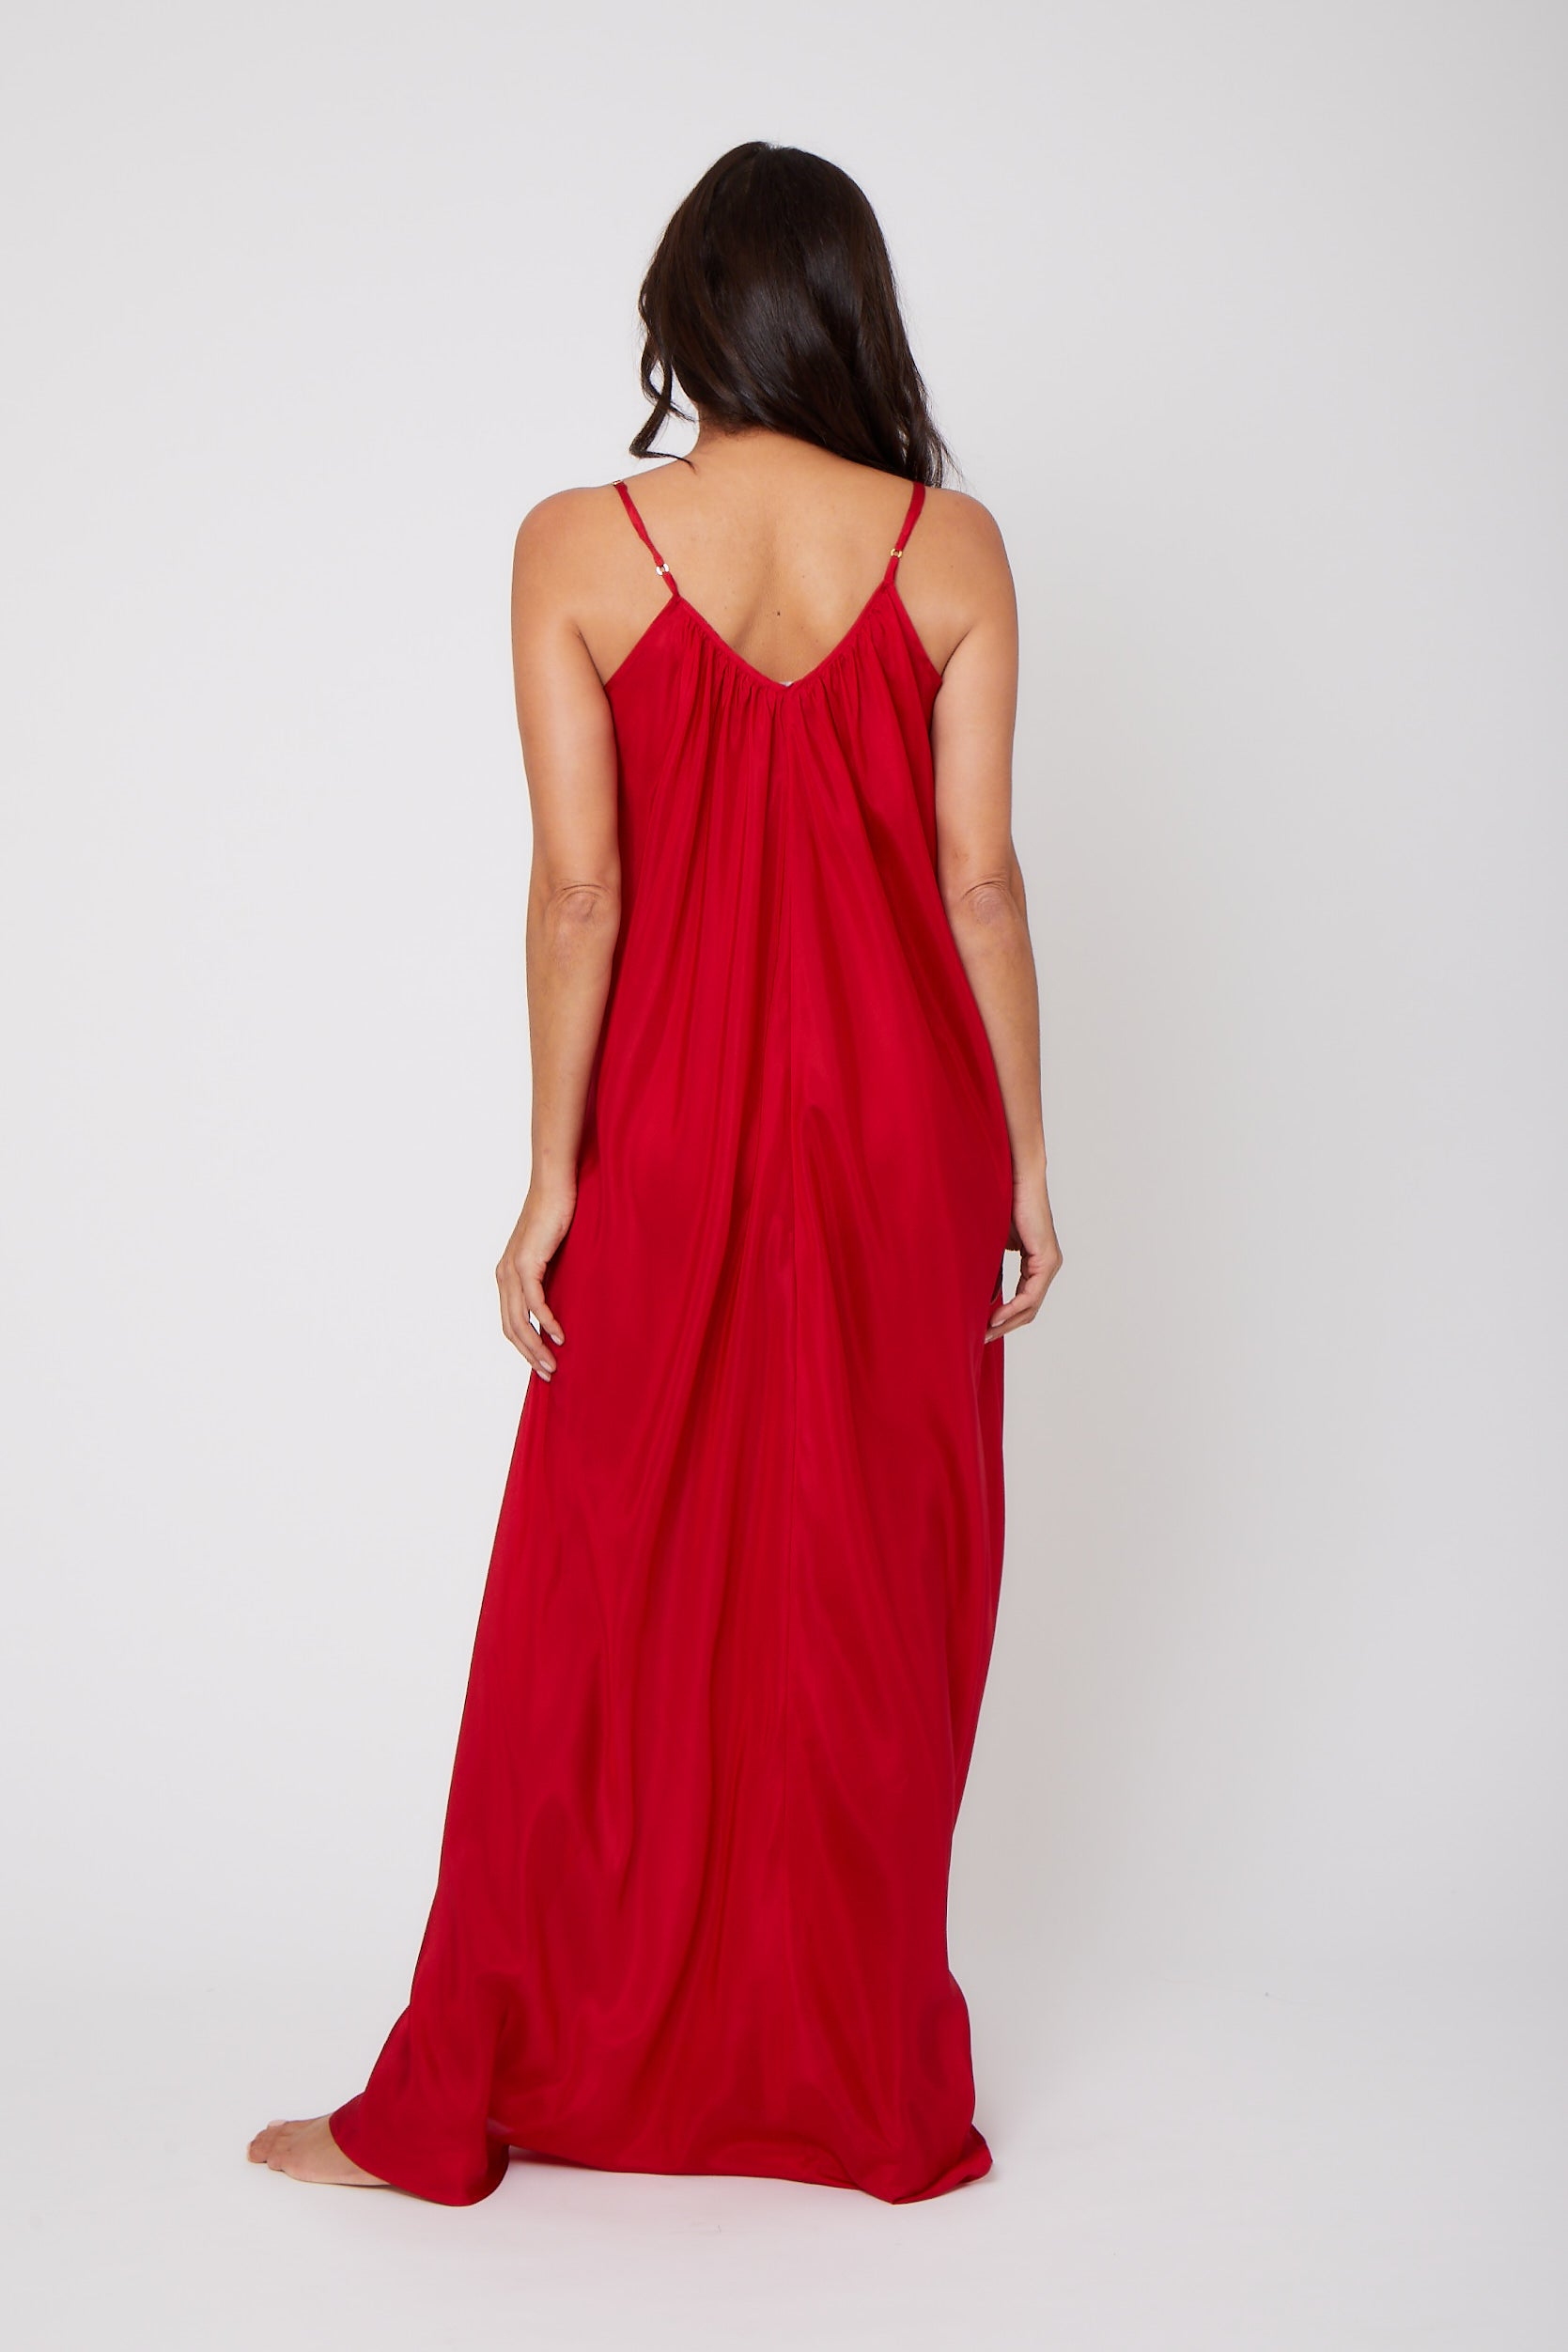 PLF_022620_40_RED_PARIS_DRESS_0981